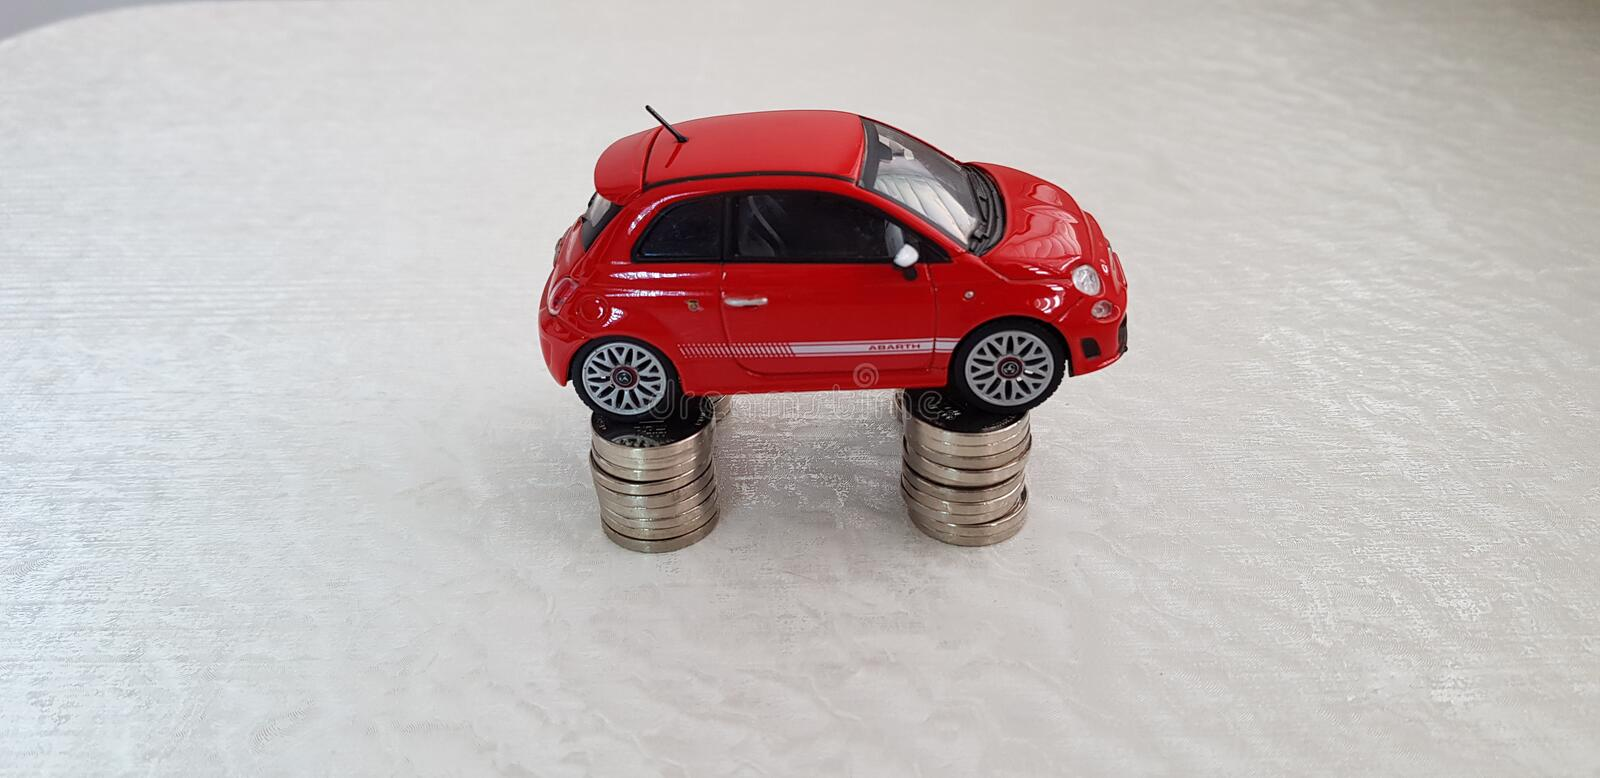 Small red fiat 500 toy stands on four stacks of one Israeli shekel coins royalty free stock images